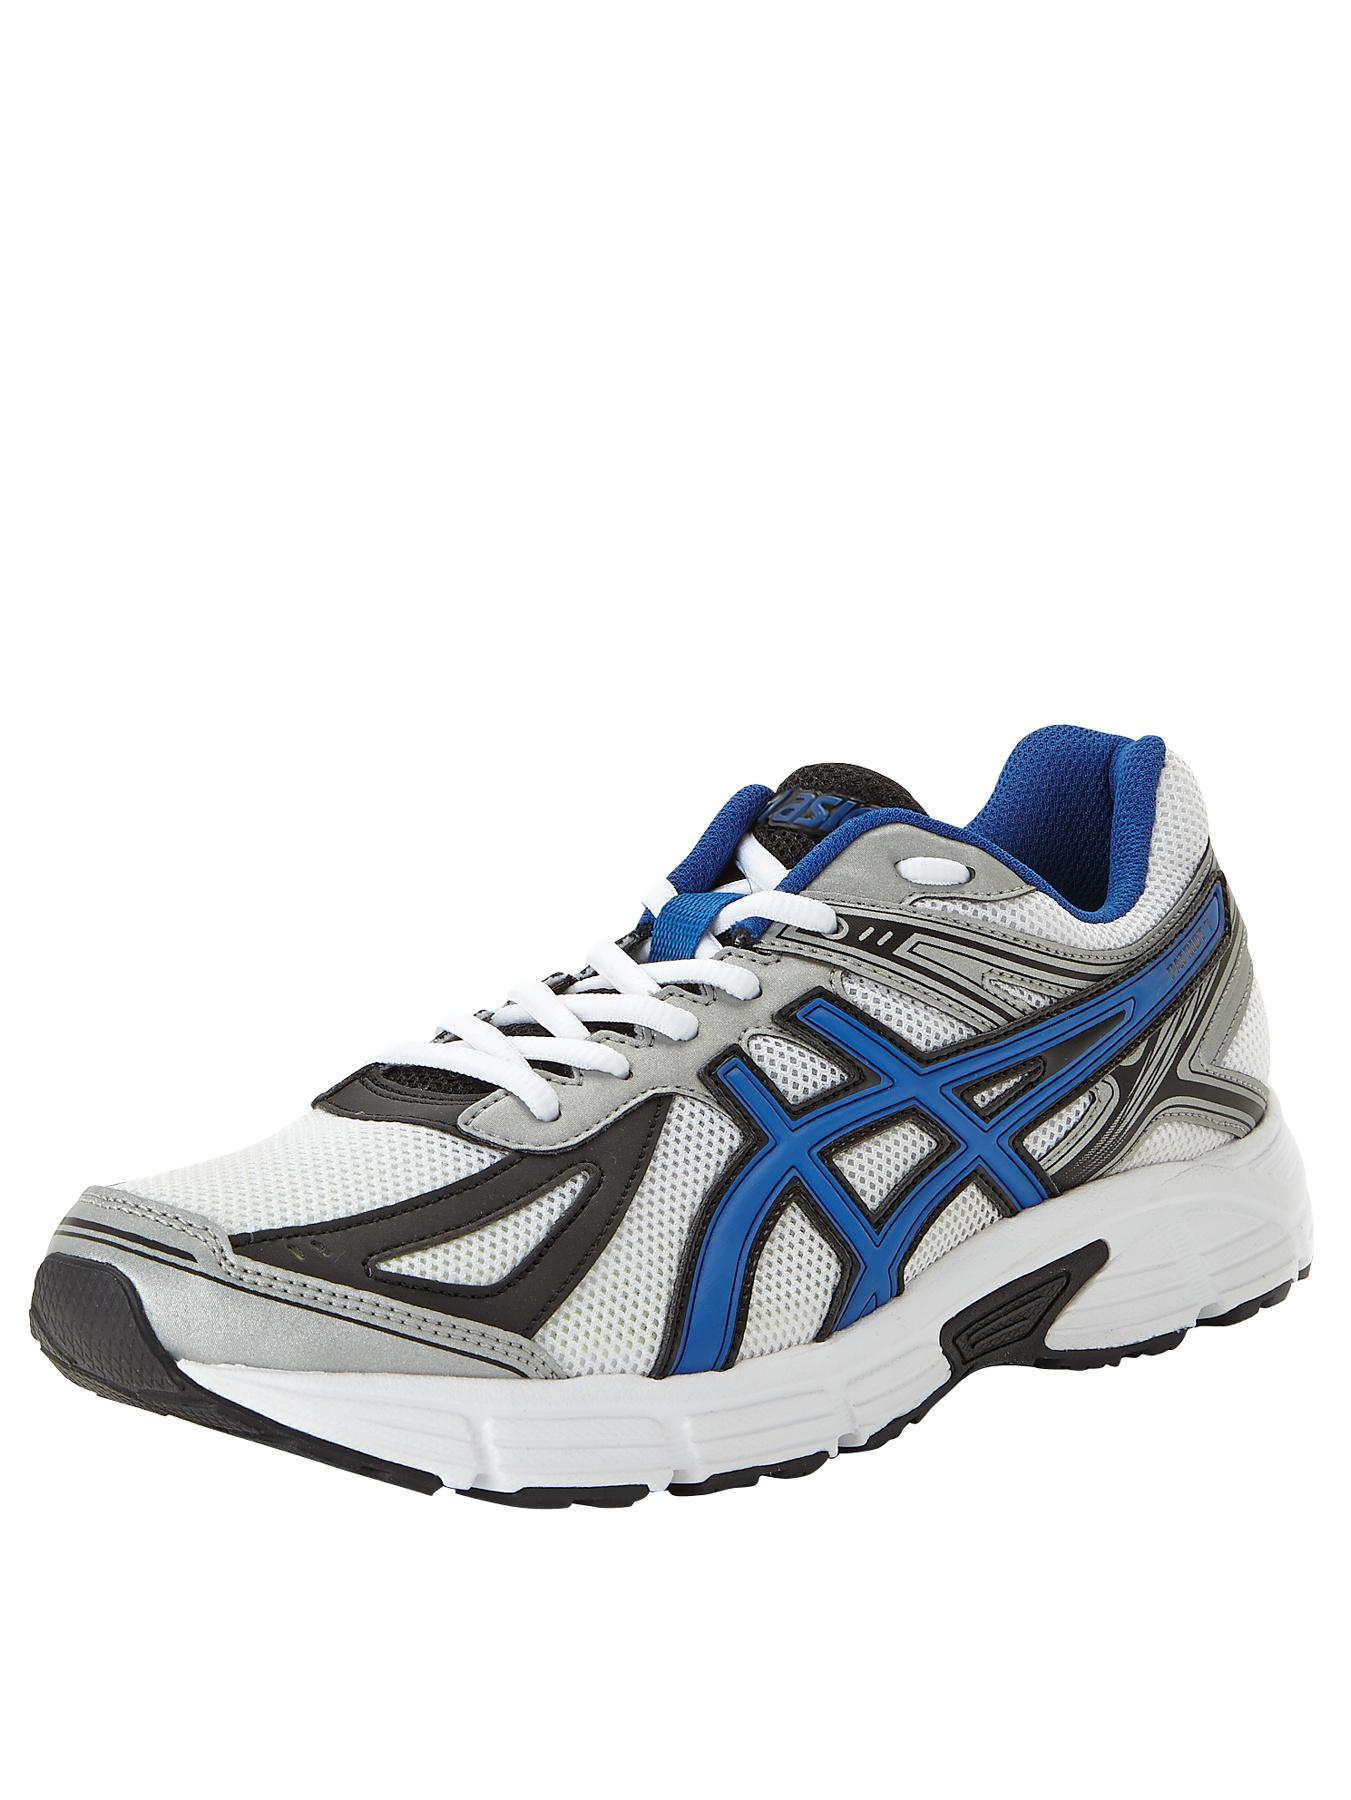 Asics Patriot 7 Mens Trainers - White, White